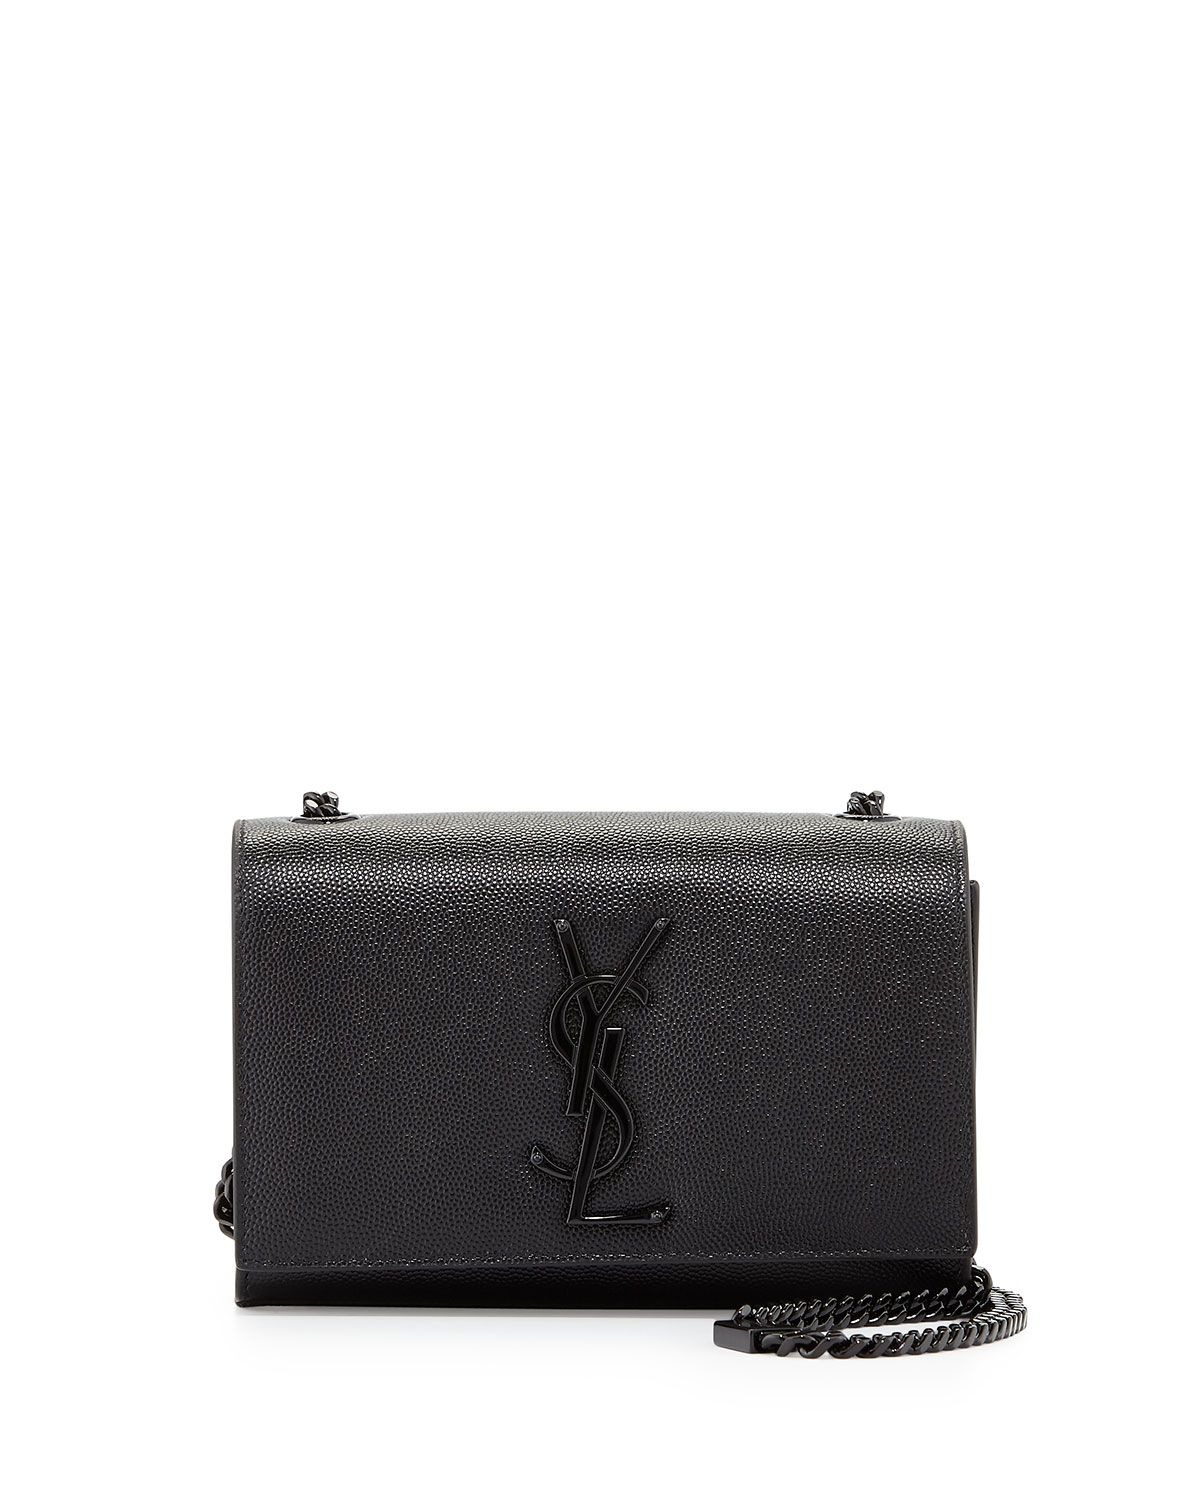 cf1f6a0310e7 Yves Saint Laurent Kate Monogram Small Shoulder Bag